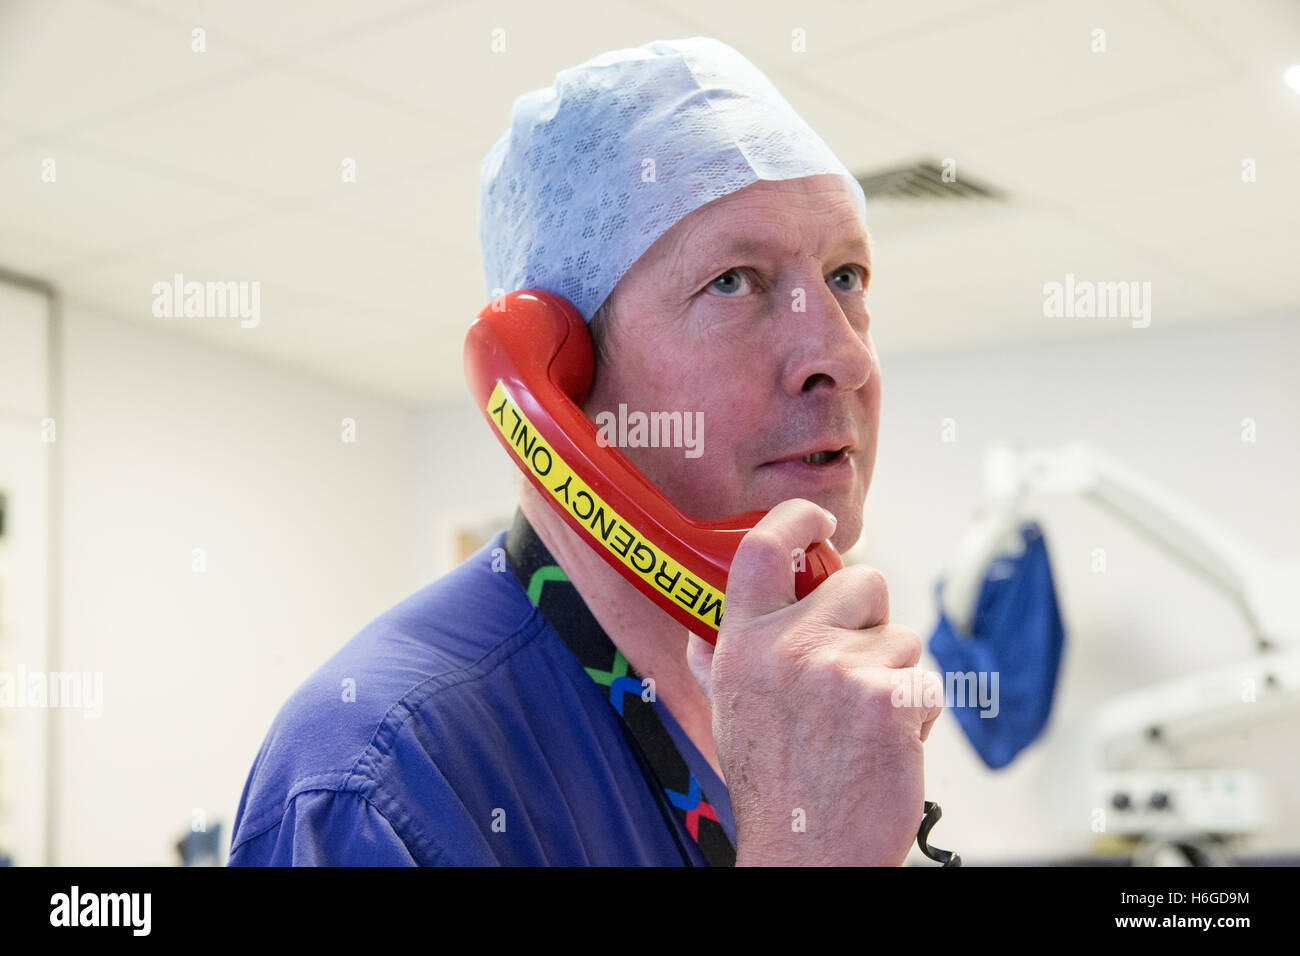 A doctor in a hospital ward uses the emergency telephone to ring for assistance - Stock Image